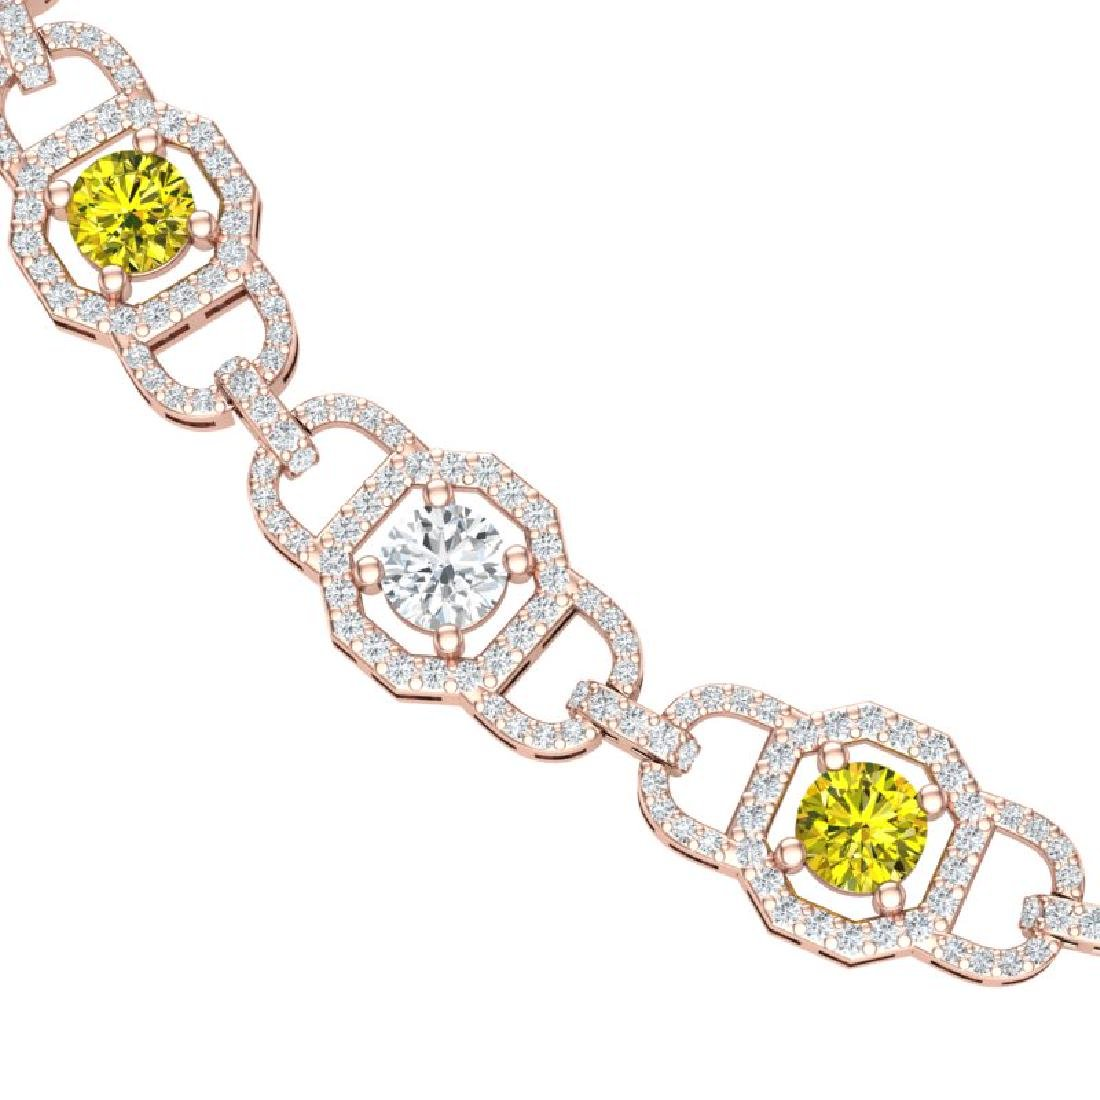 25 CTW SI/I Fancy Yellow And White Diamond Necklace 18K